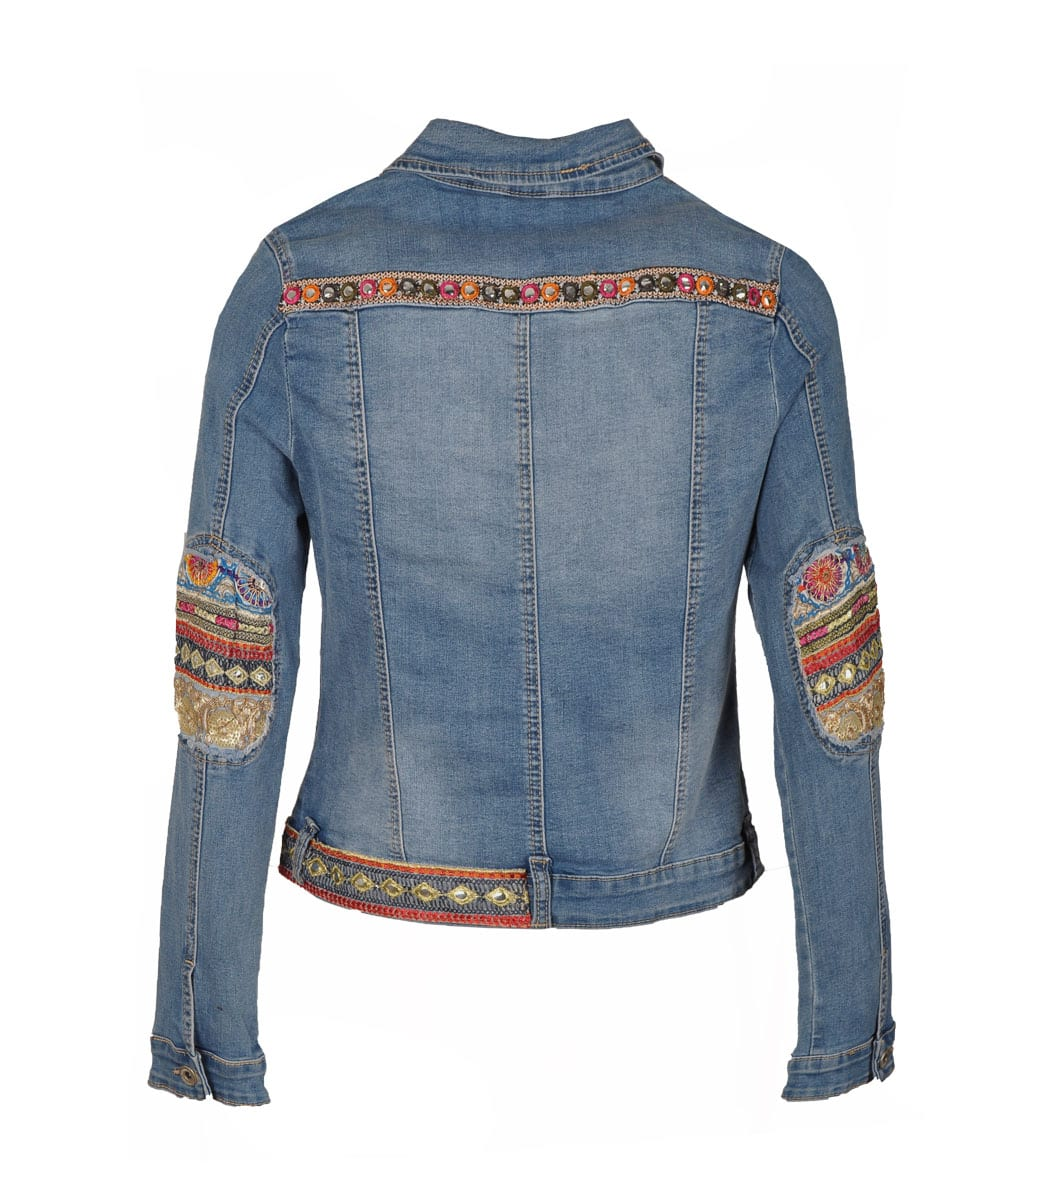 Embroidered braided denim jacket